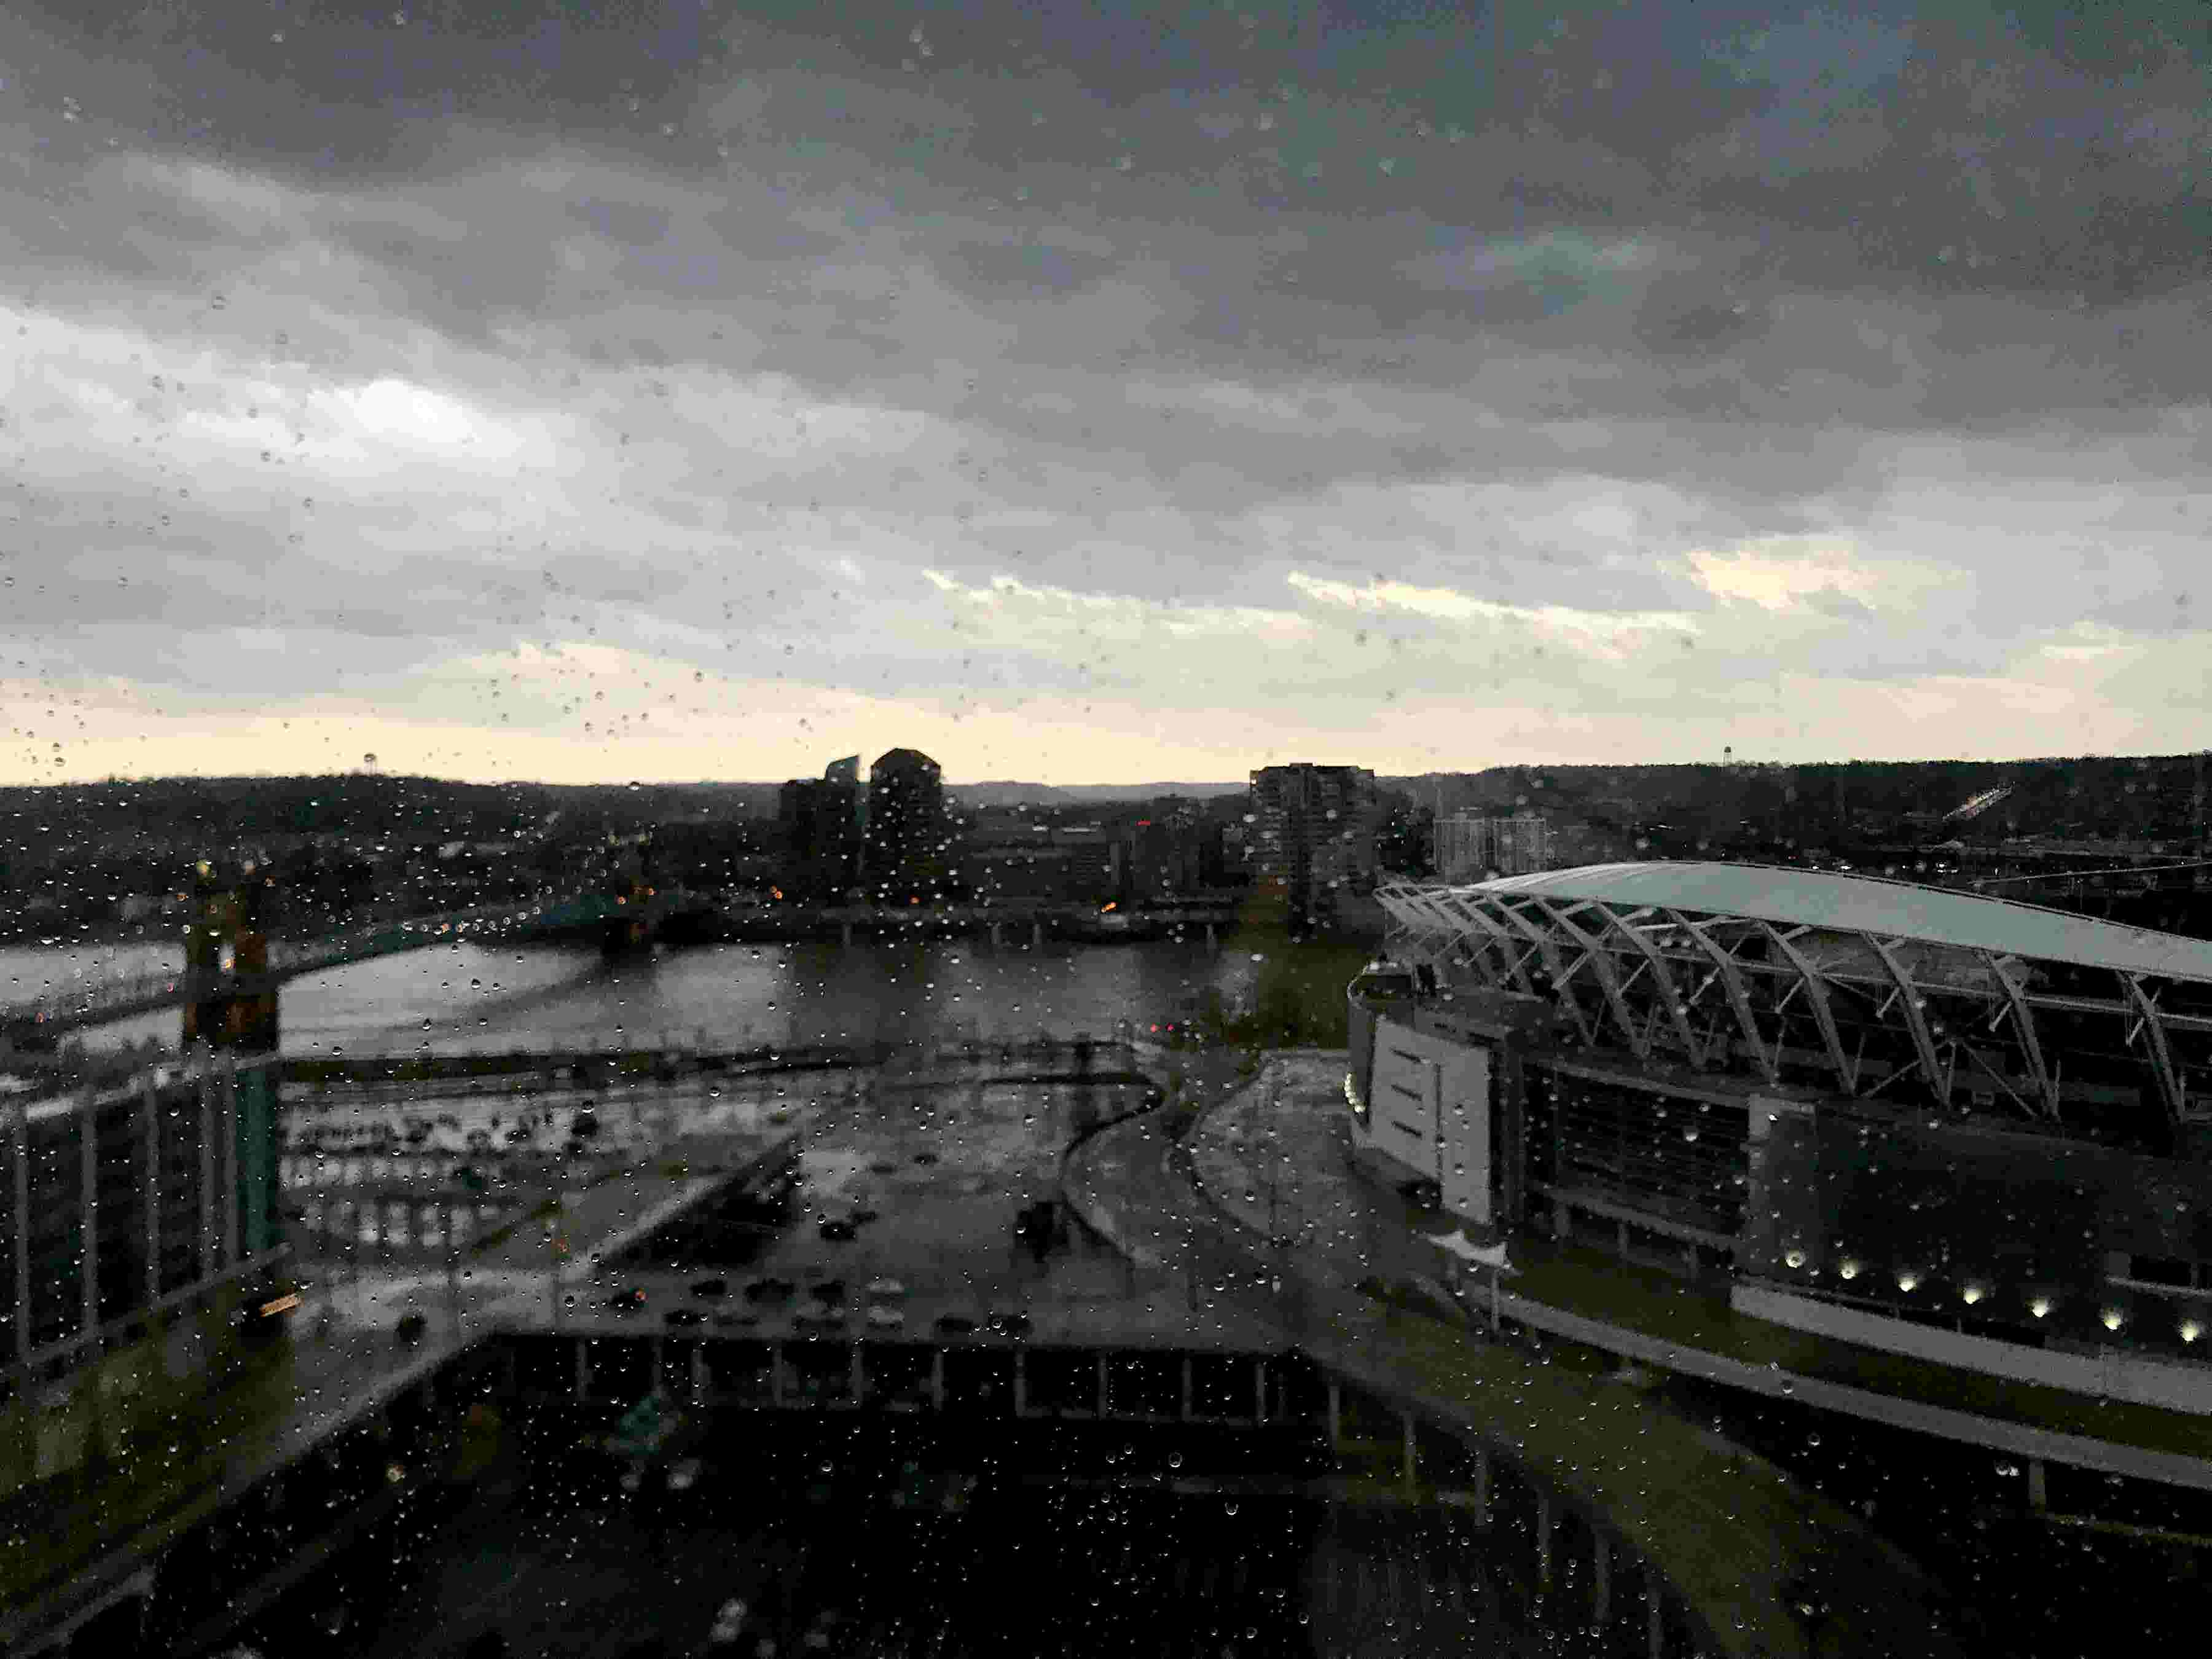 Time-lapse: Storms roll into Downtown